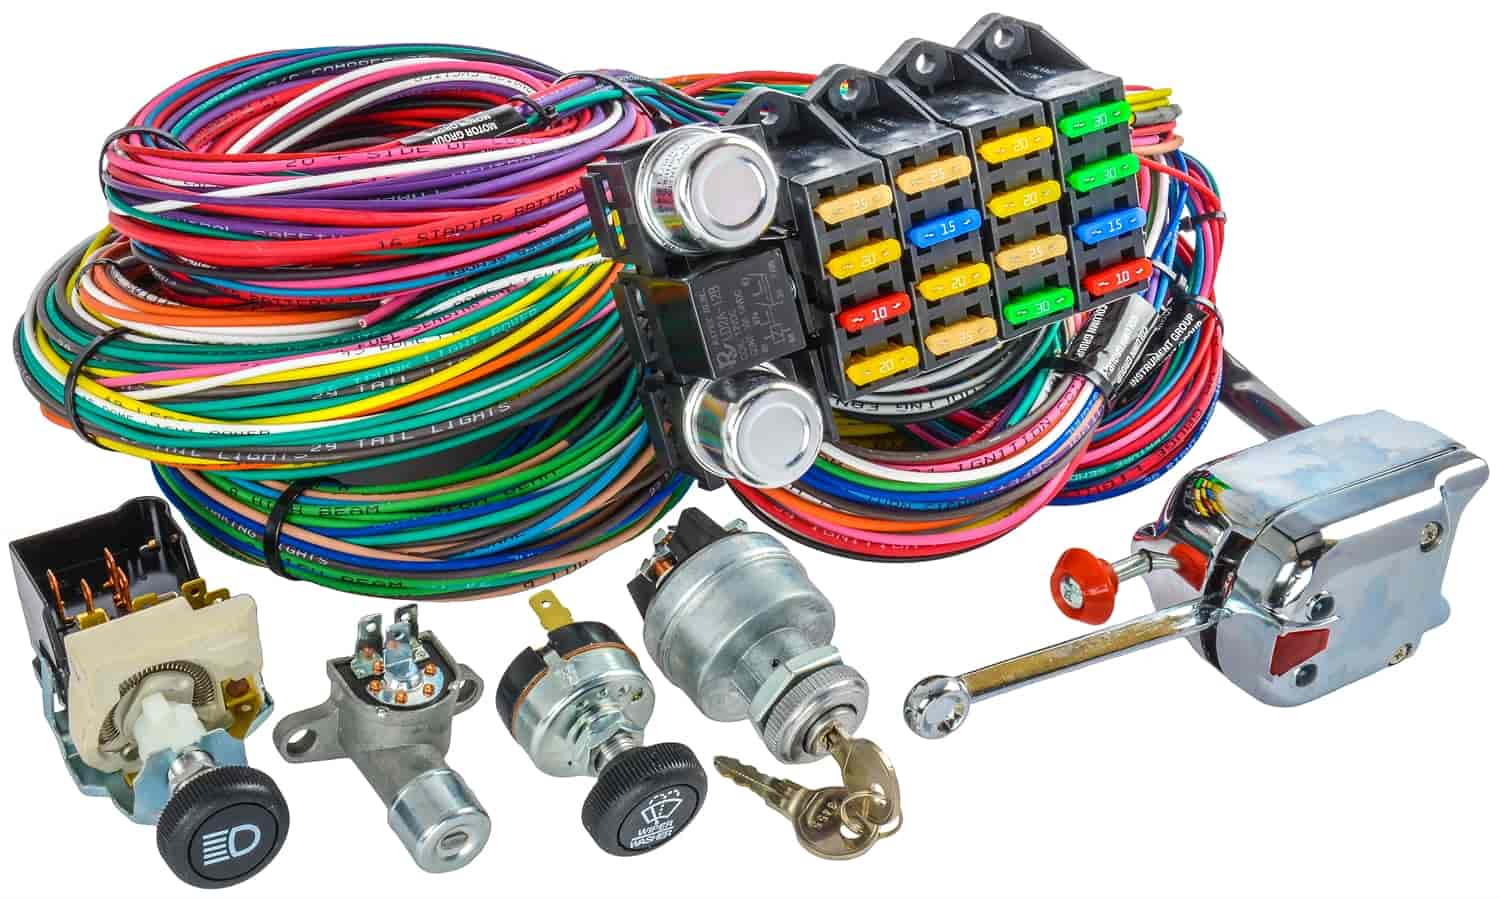 555 10405k jegs performance products 10405k universal wiring harness jegs universal wiring harness at soozxer.org